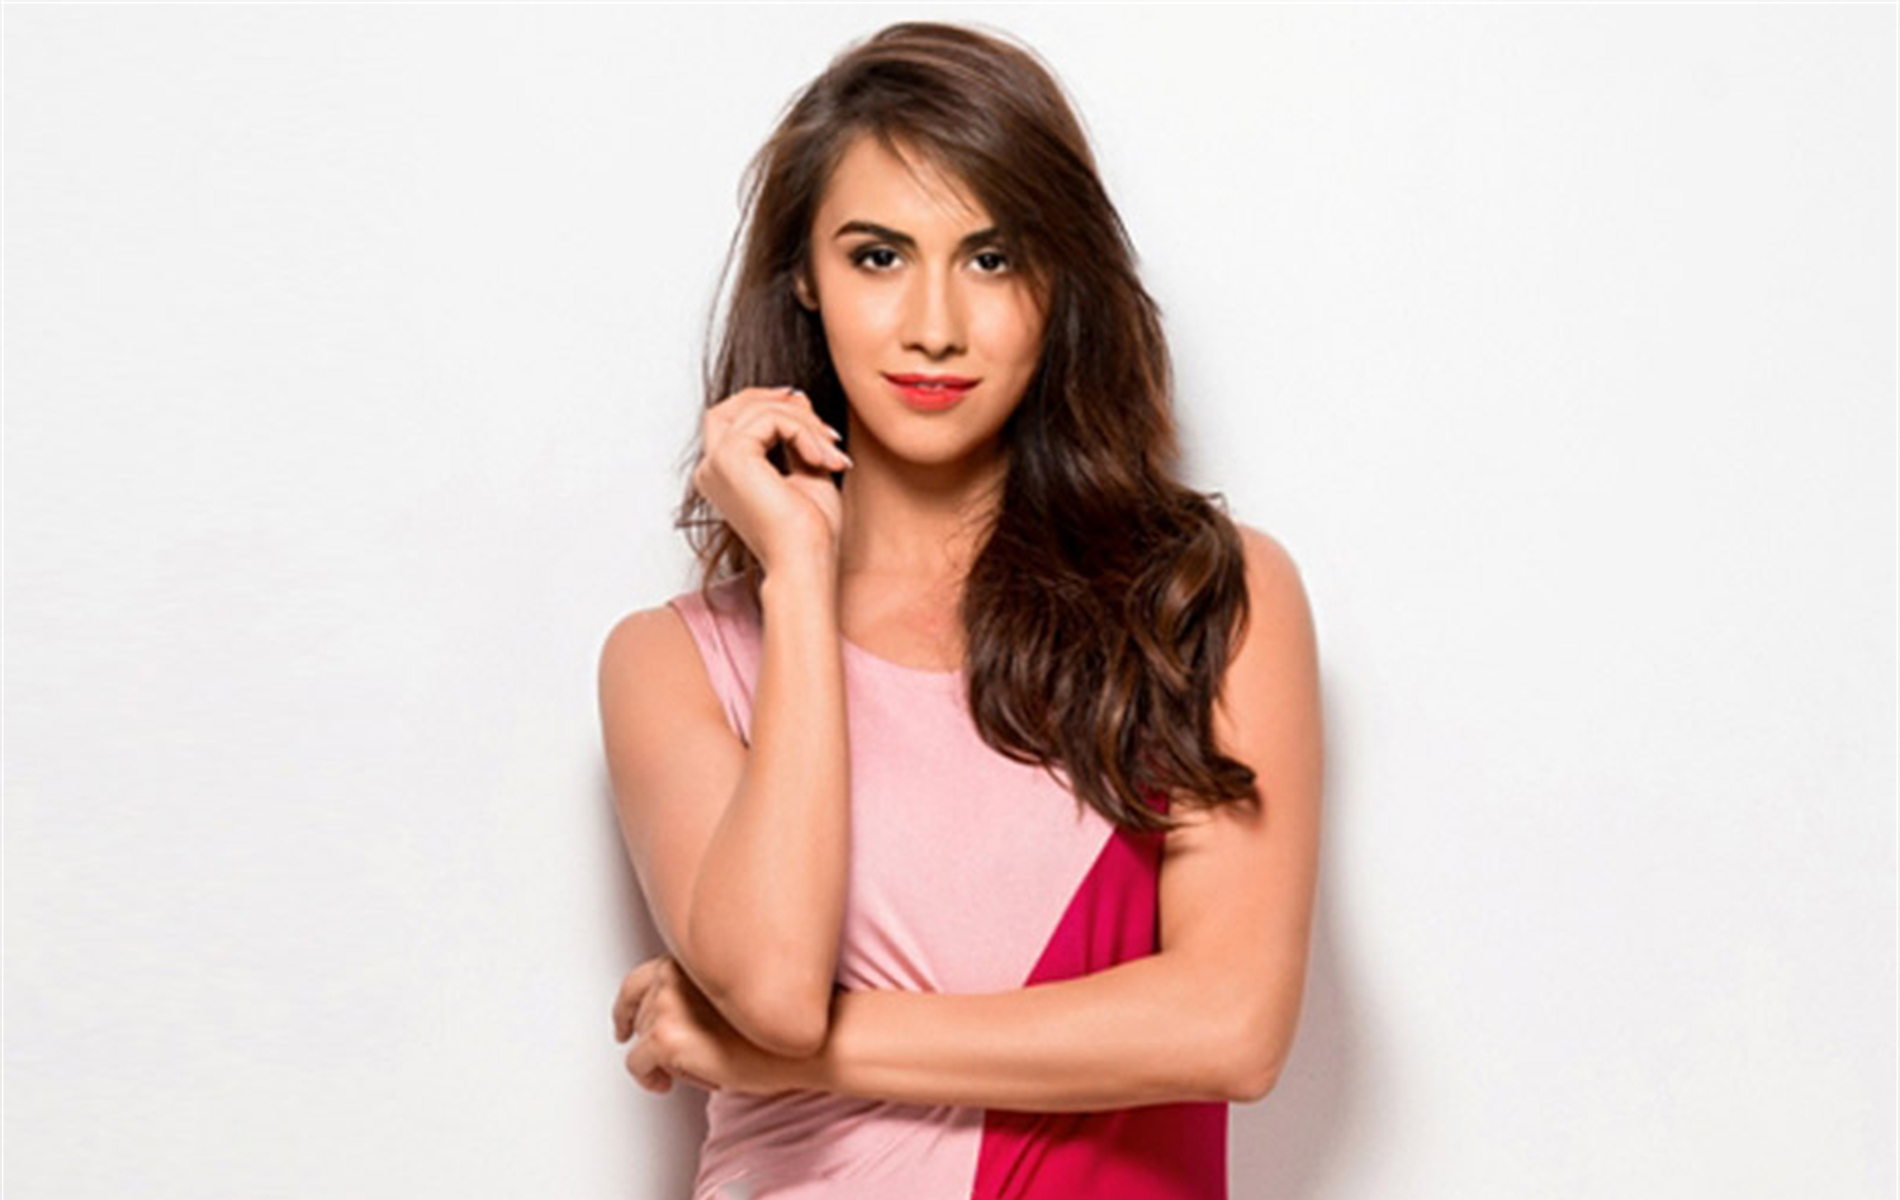 lauren gottlieb naked photo